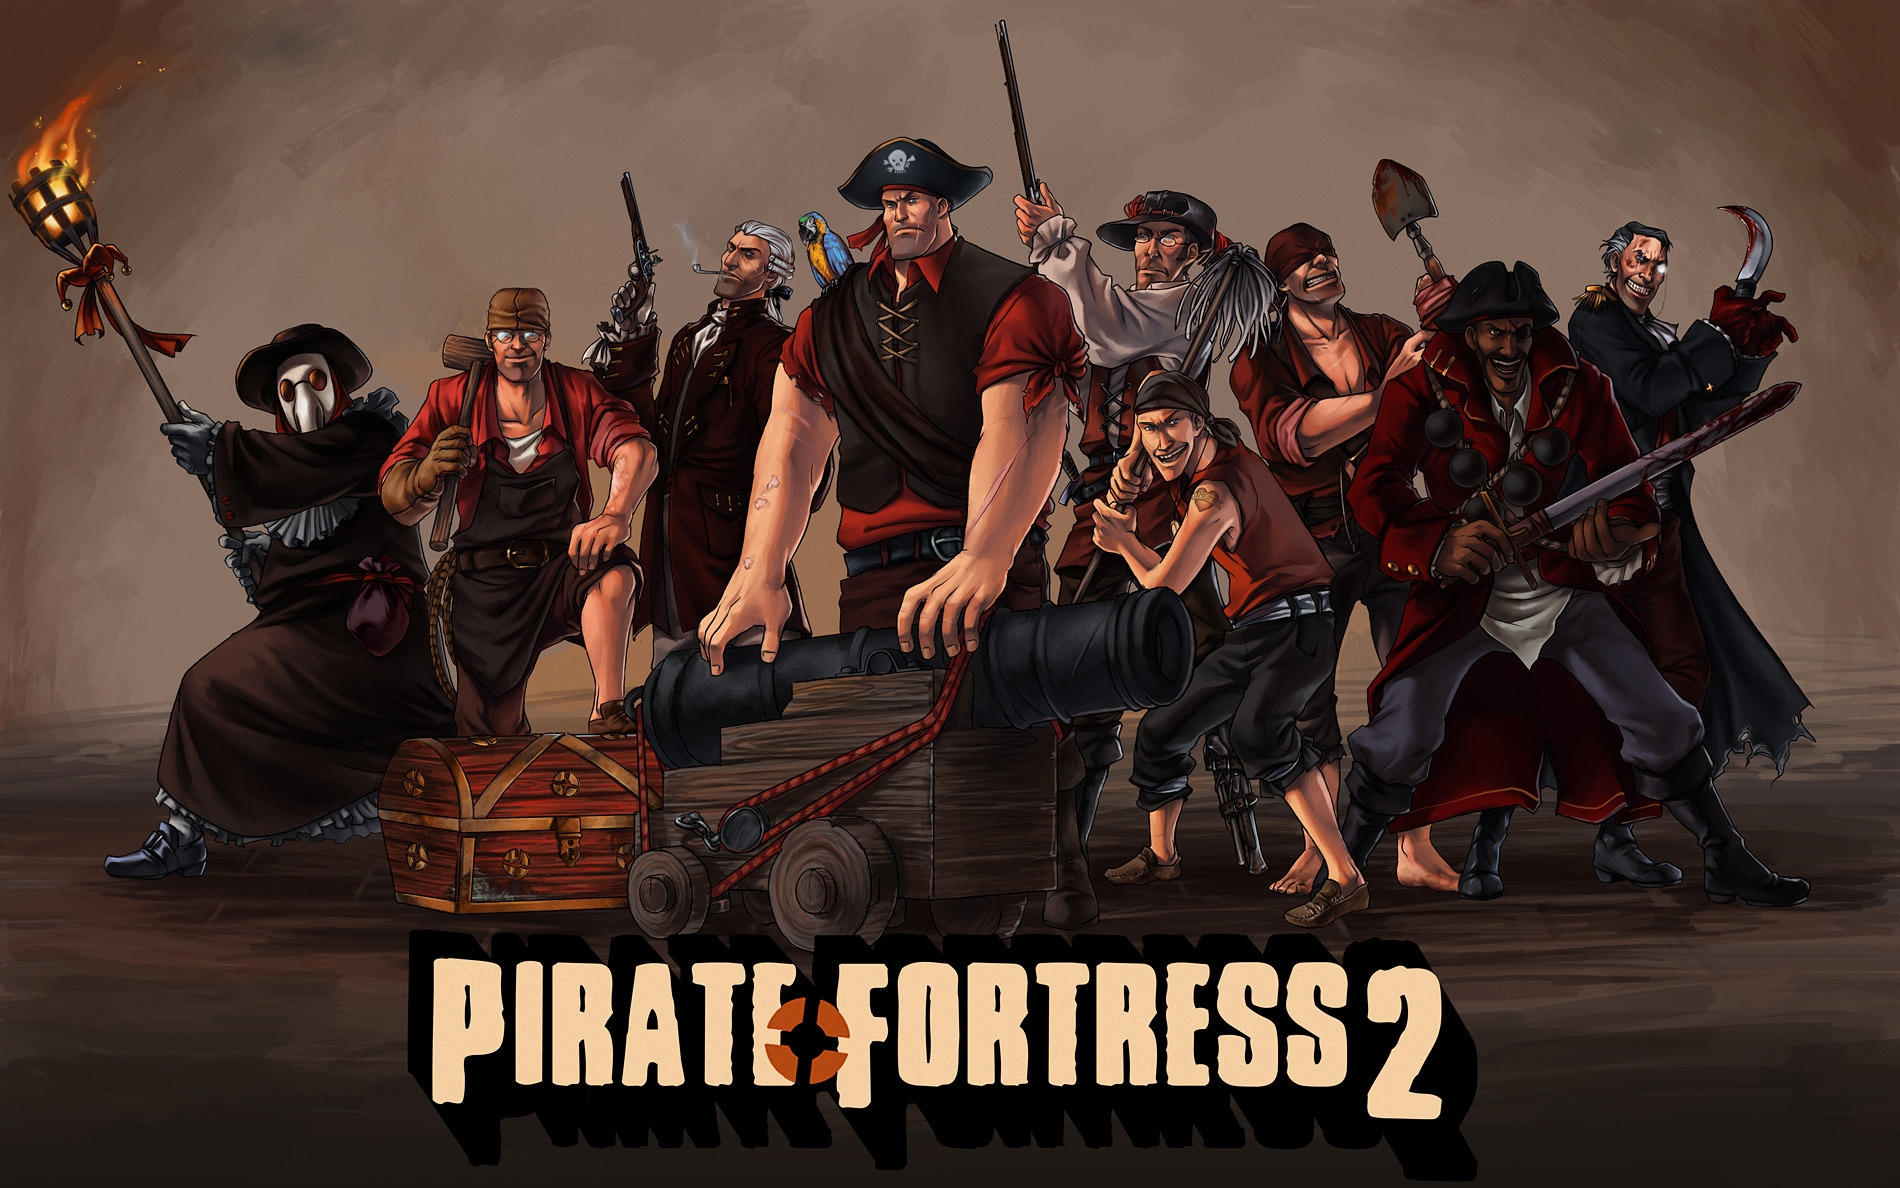 tf2, team fortress 2, pirate fortress, valve